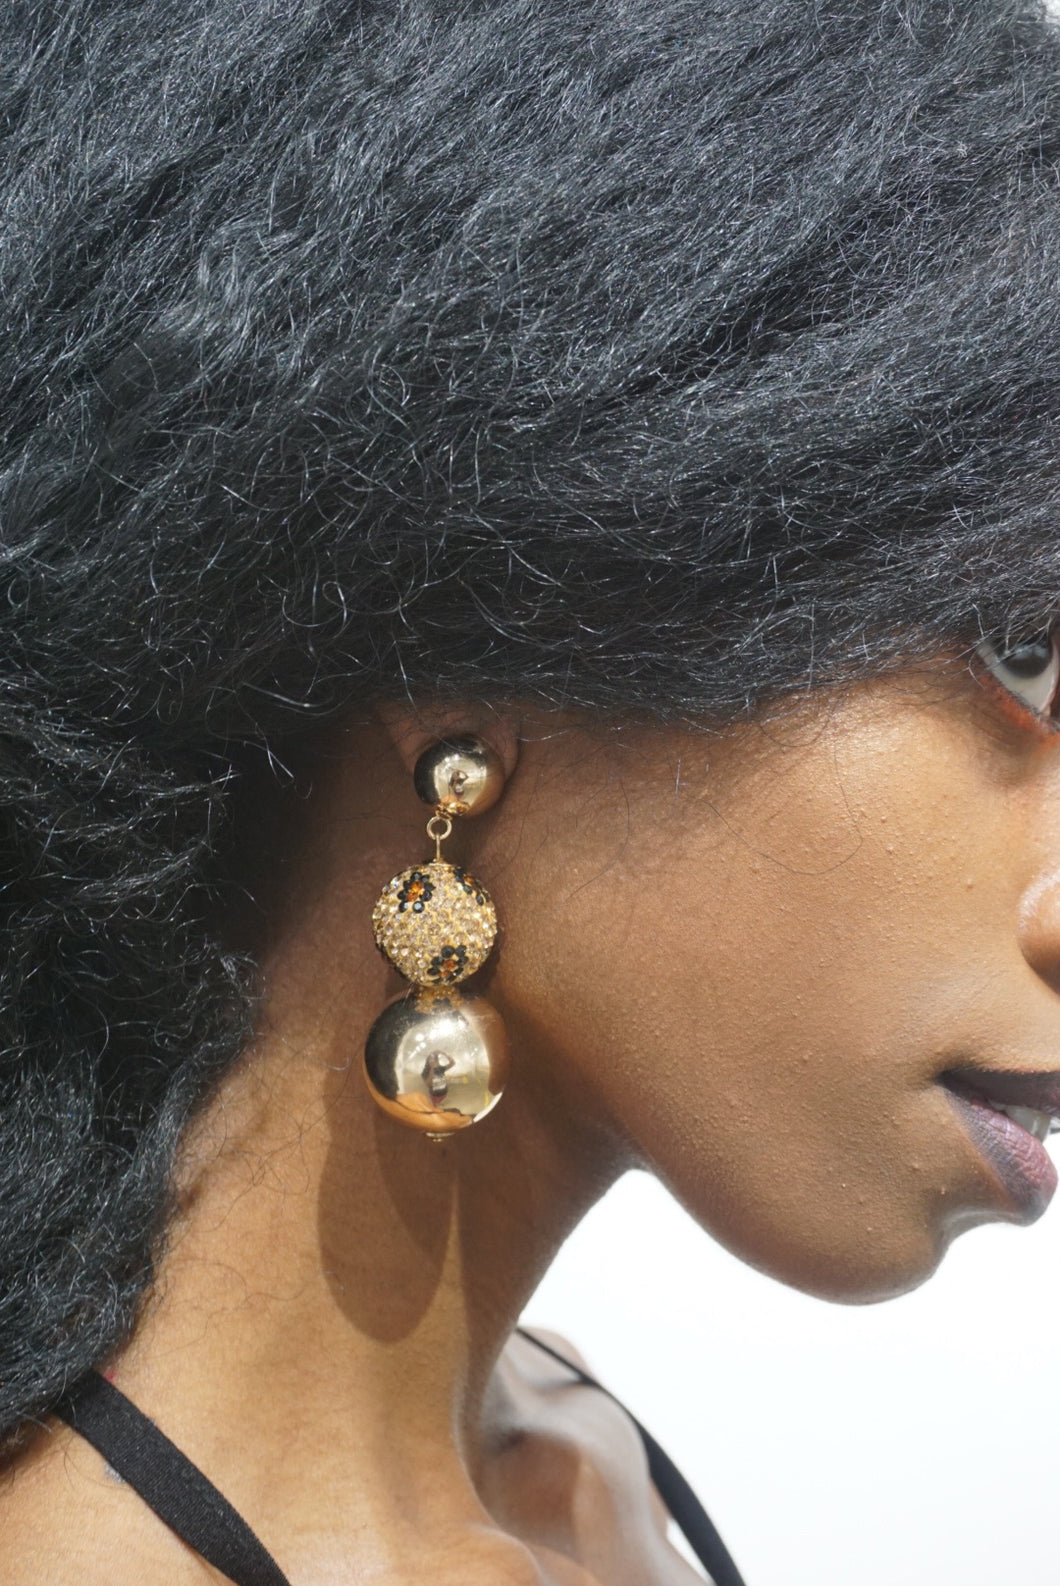 Leopard's Ball Earrings